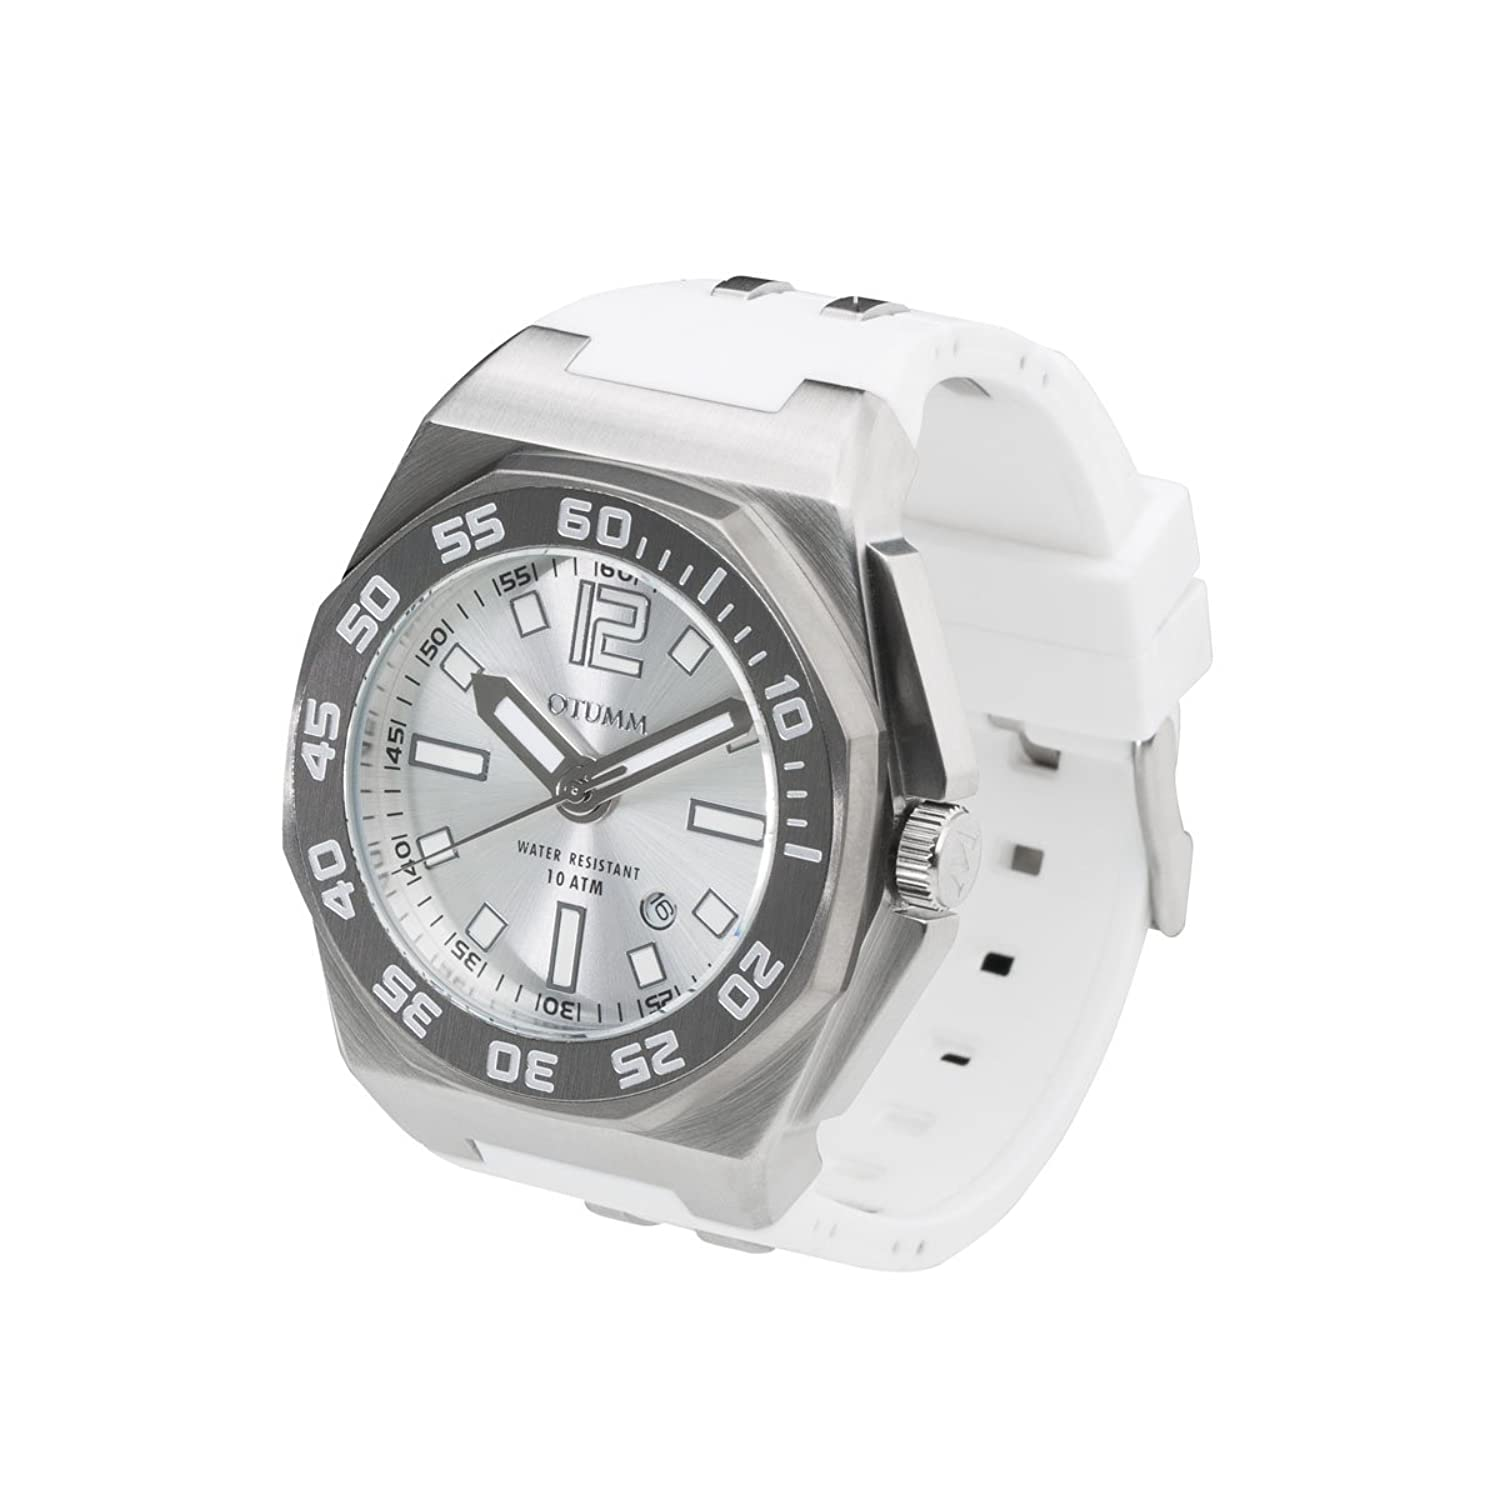 OTUMM Sports Calender 08724 Damen-Armbanduhr XL - 45mm (analog) - Weiß